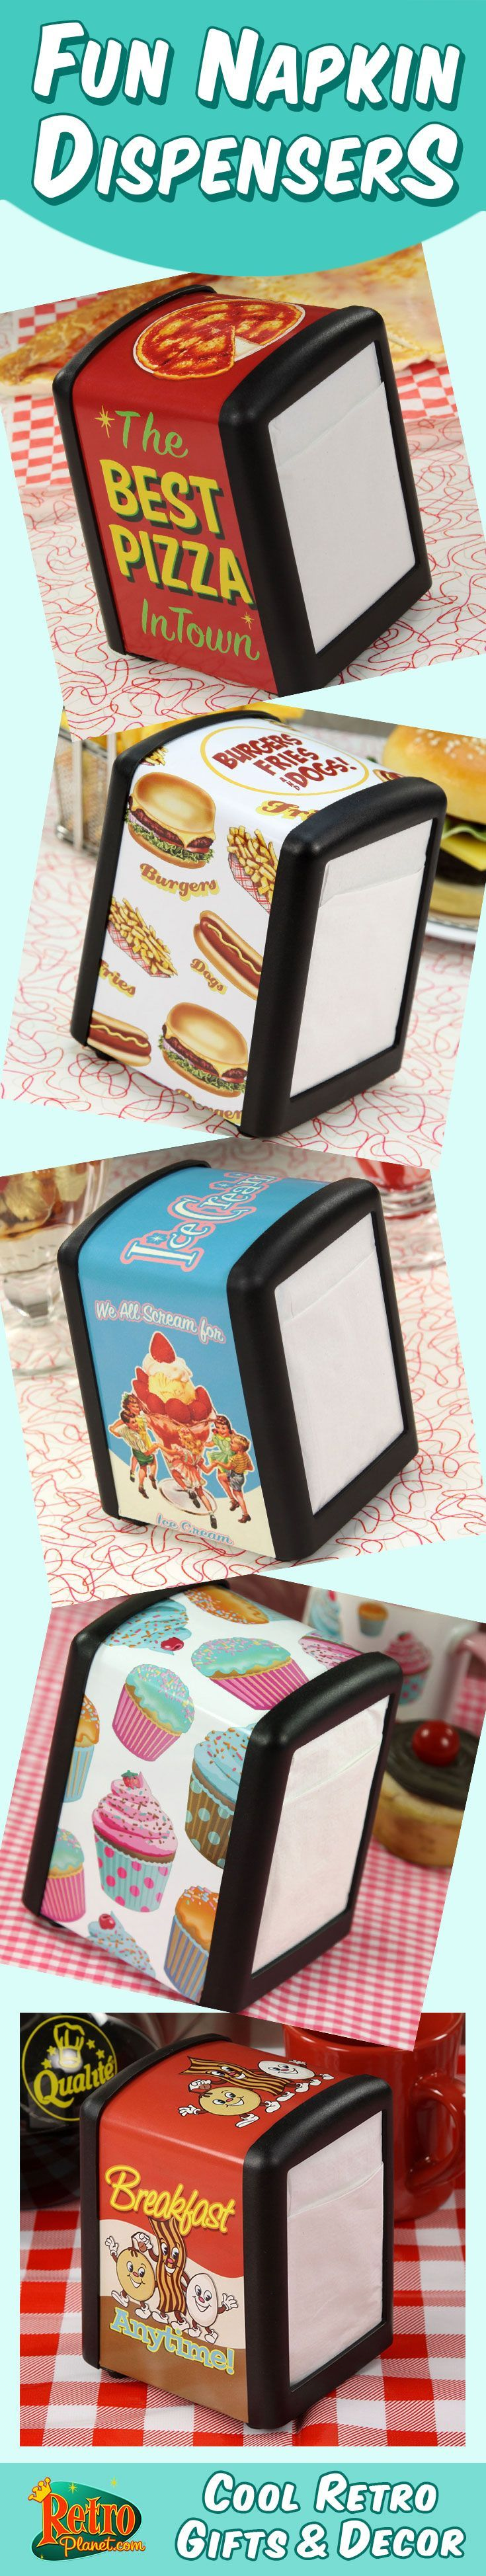 Lustige Vintage-Serviettenspender für Küche, Esszimmer, Heimkino, …   Fun vintage themed napkin dispensers for your kitchen, dining room,home theater,… – <a class=